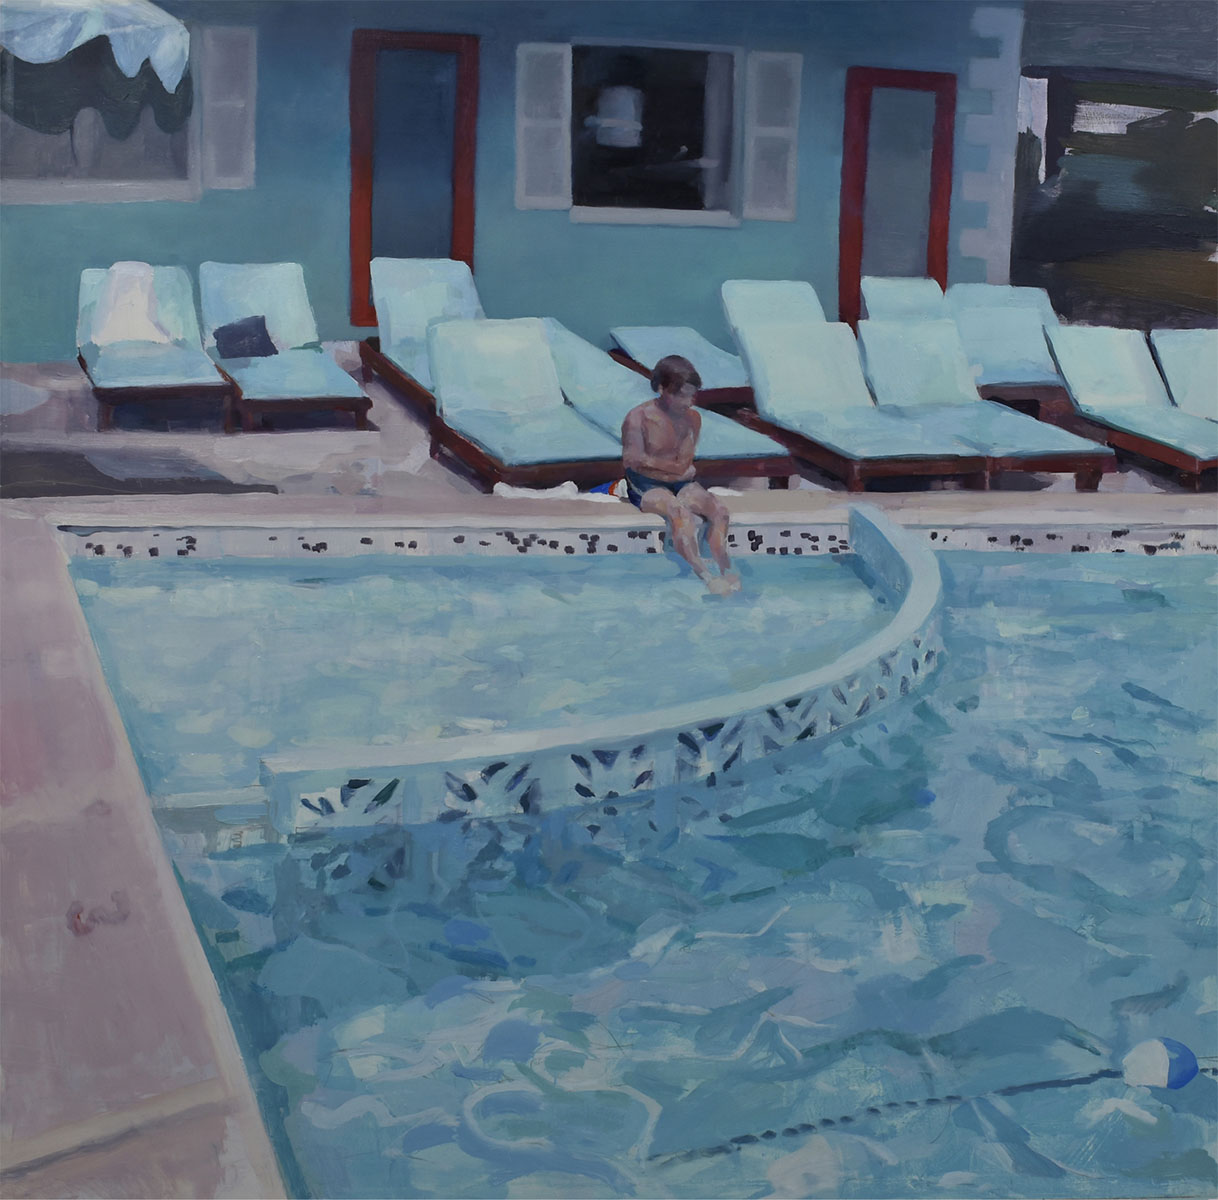 """Poolside, 2018. 24"""" x 24"""" oil on panel. © Justin Duffus. Courtesy of Justin Duffus and Linda Hodges Gallery"""